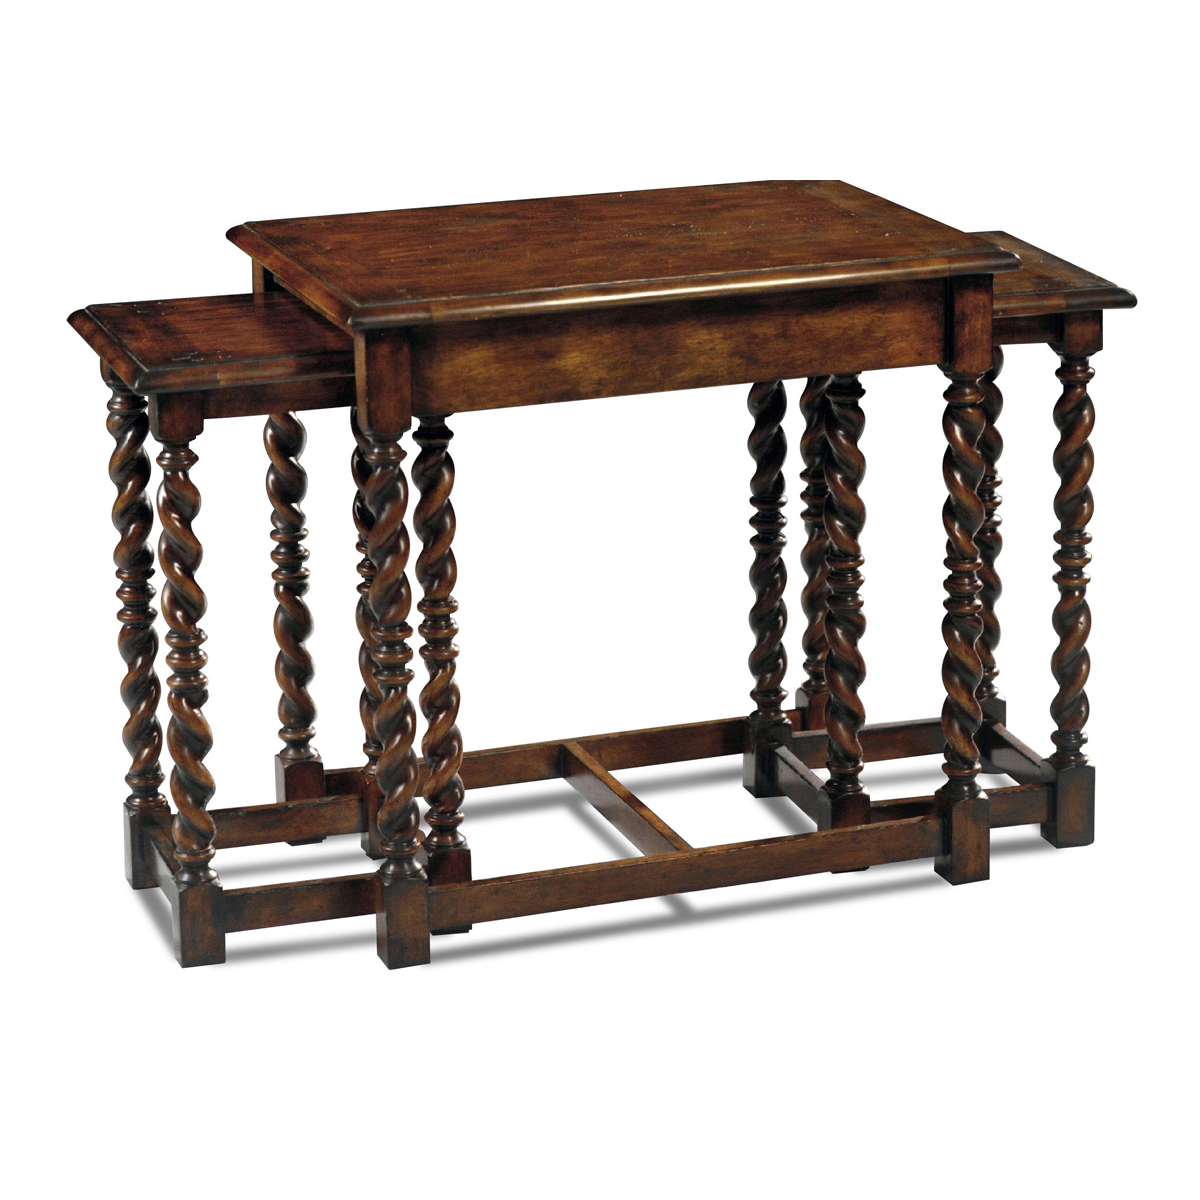 Country English Style Nesting Coffee Table English Antiques Caledonian Inc Barrington Il